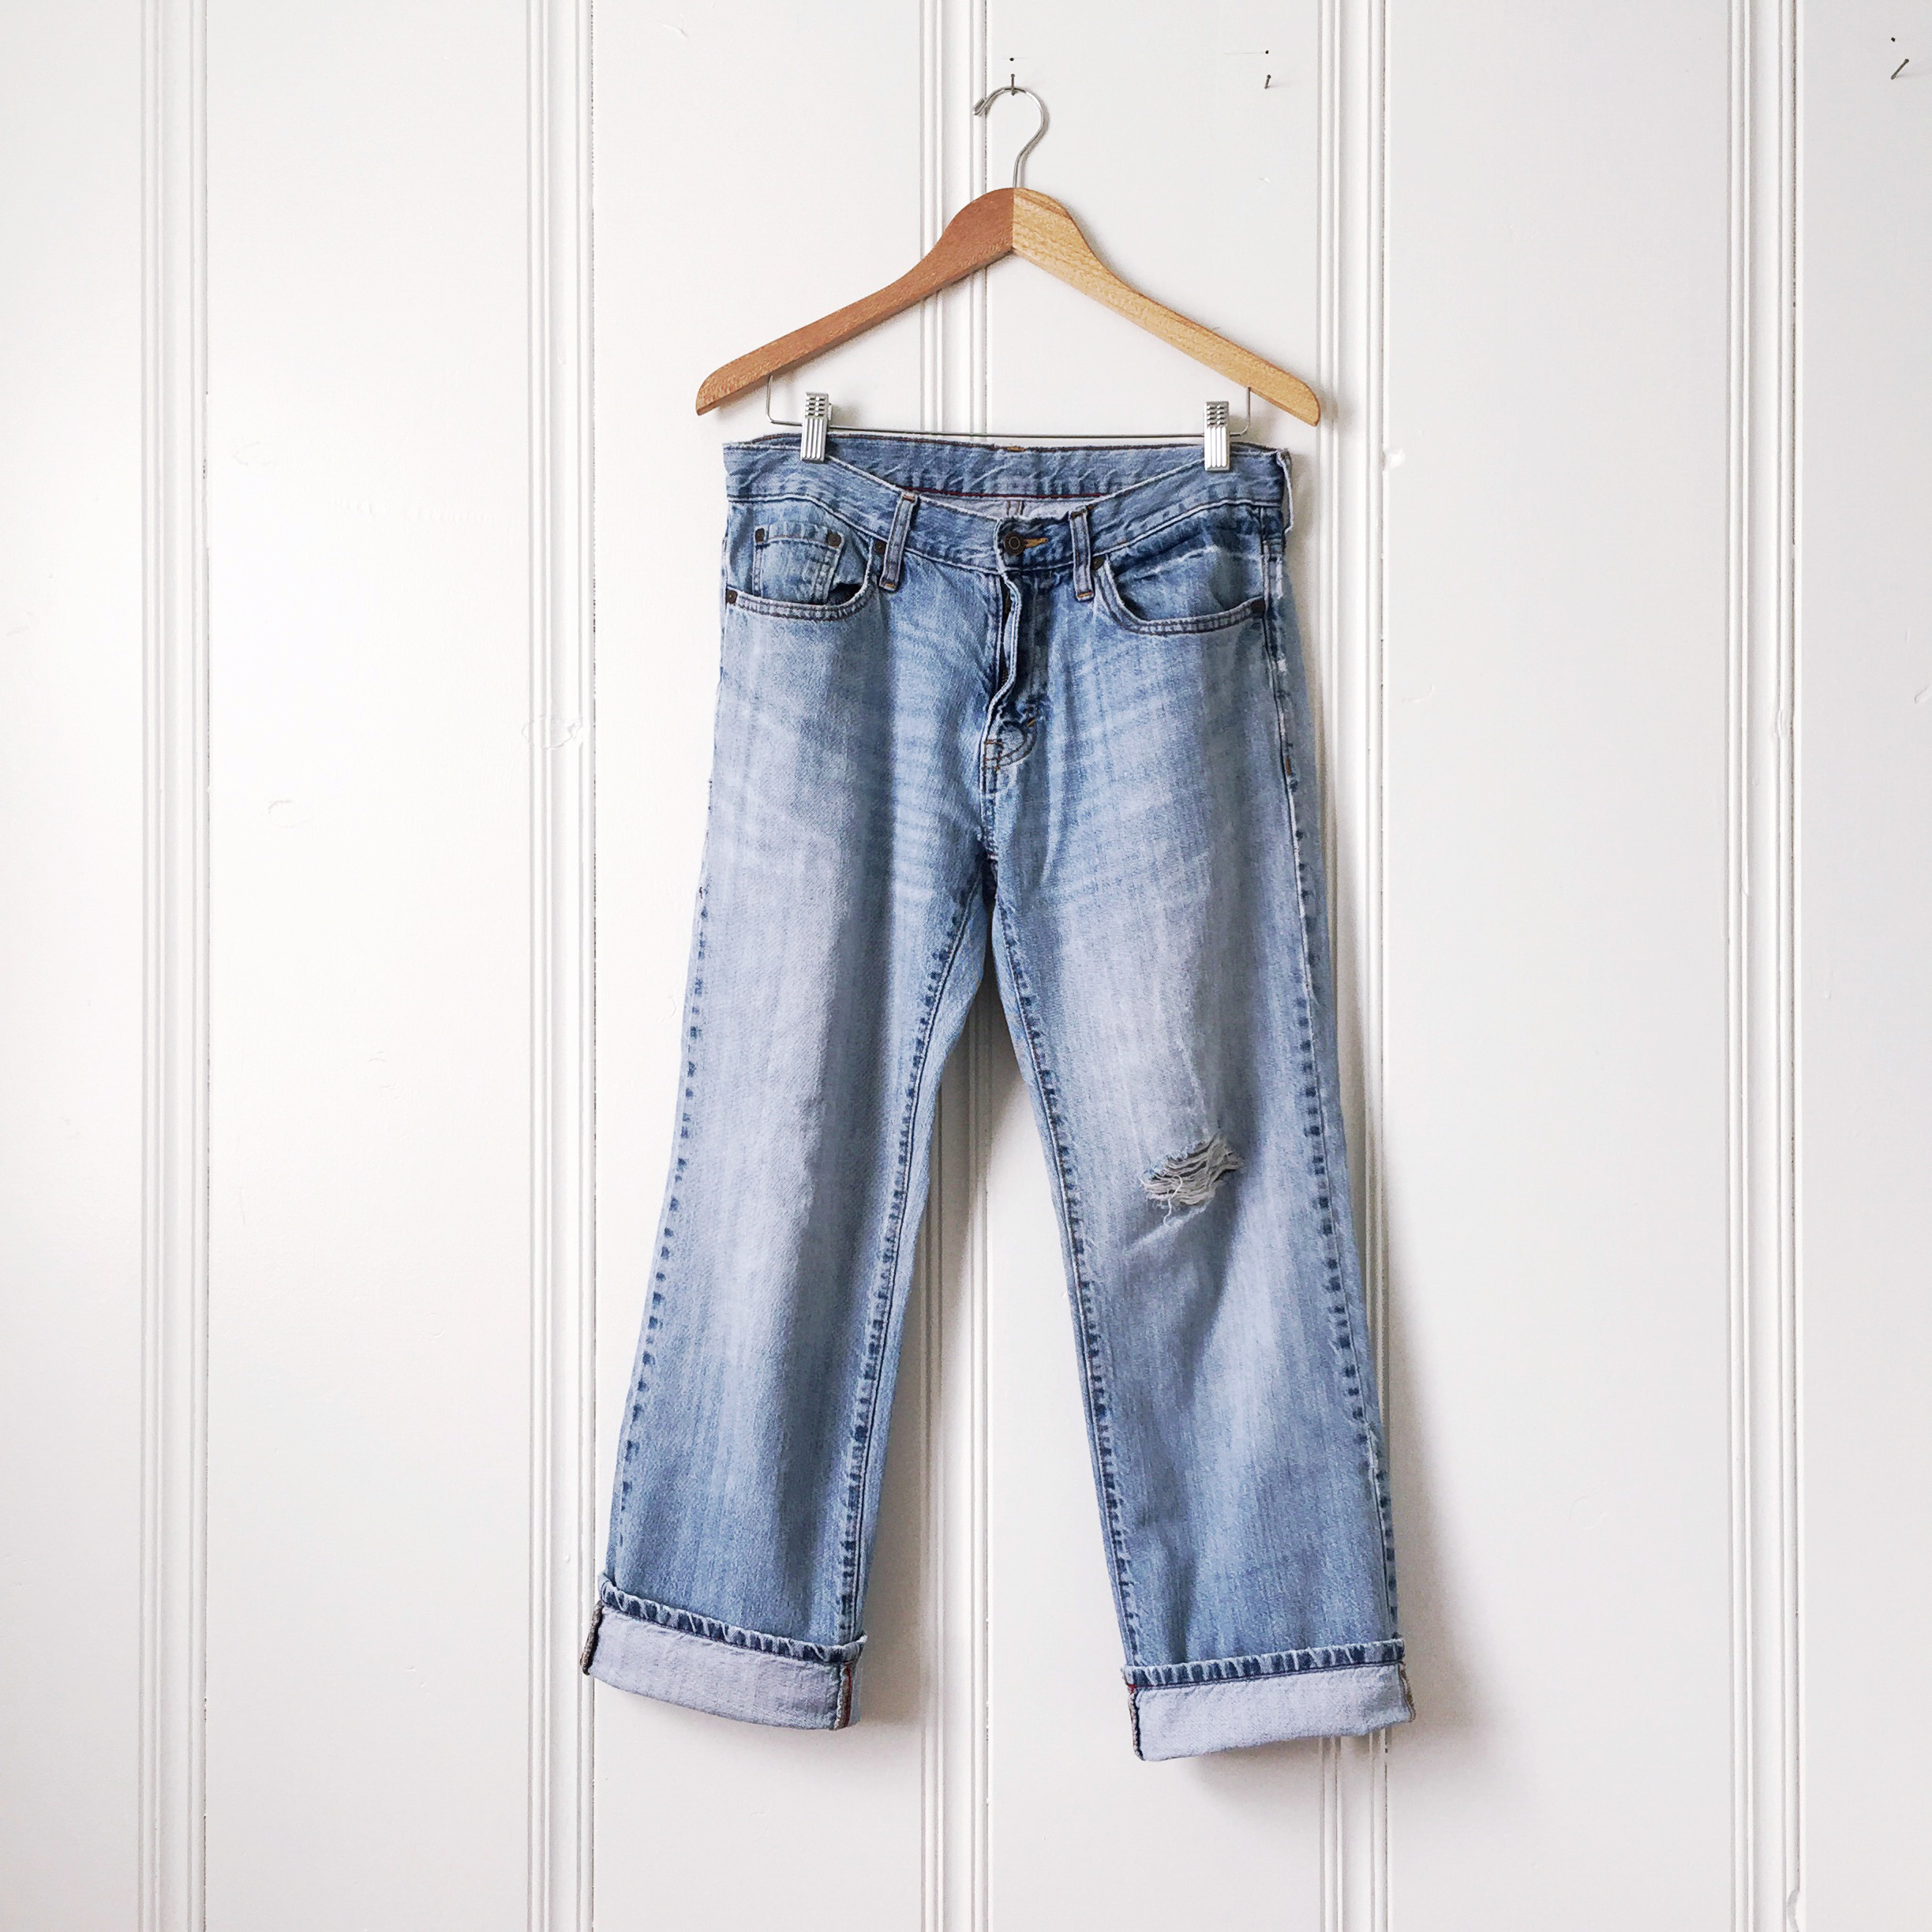 holey_jeans_old_navy.jpg